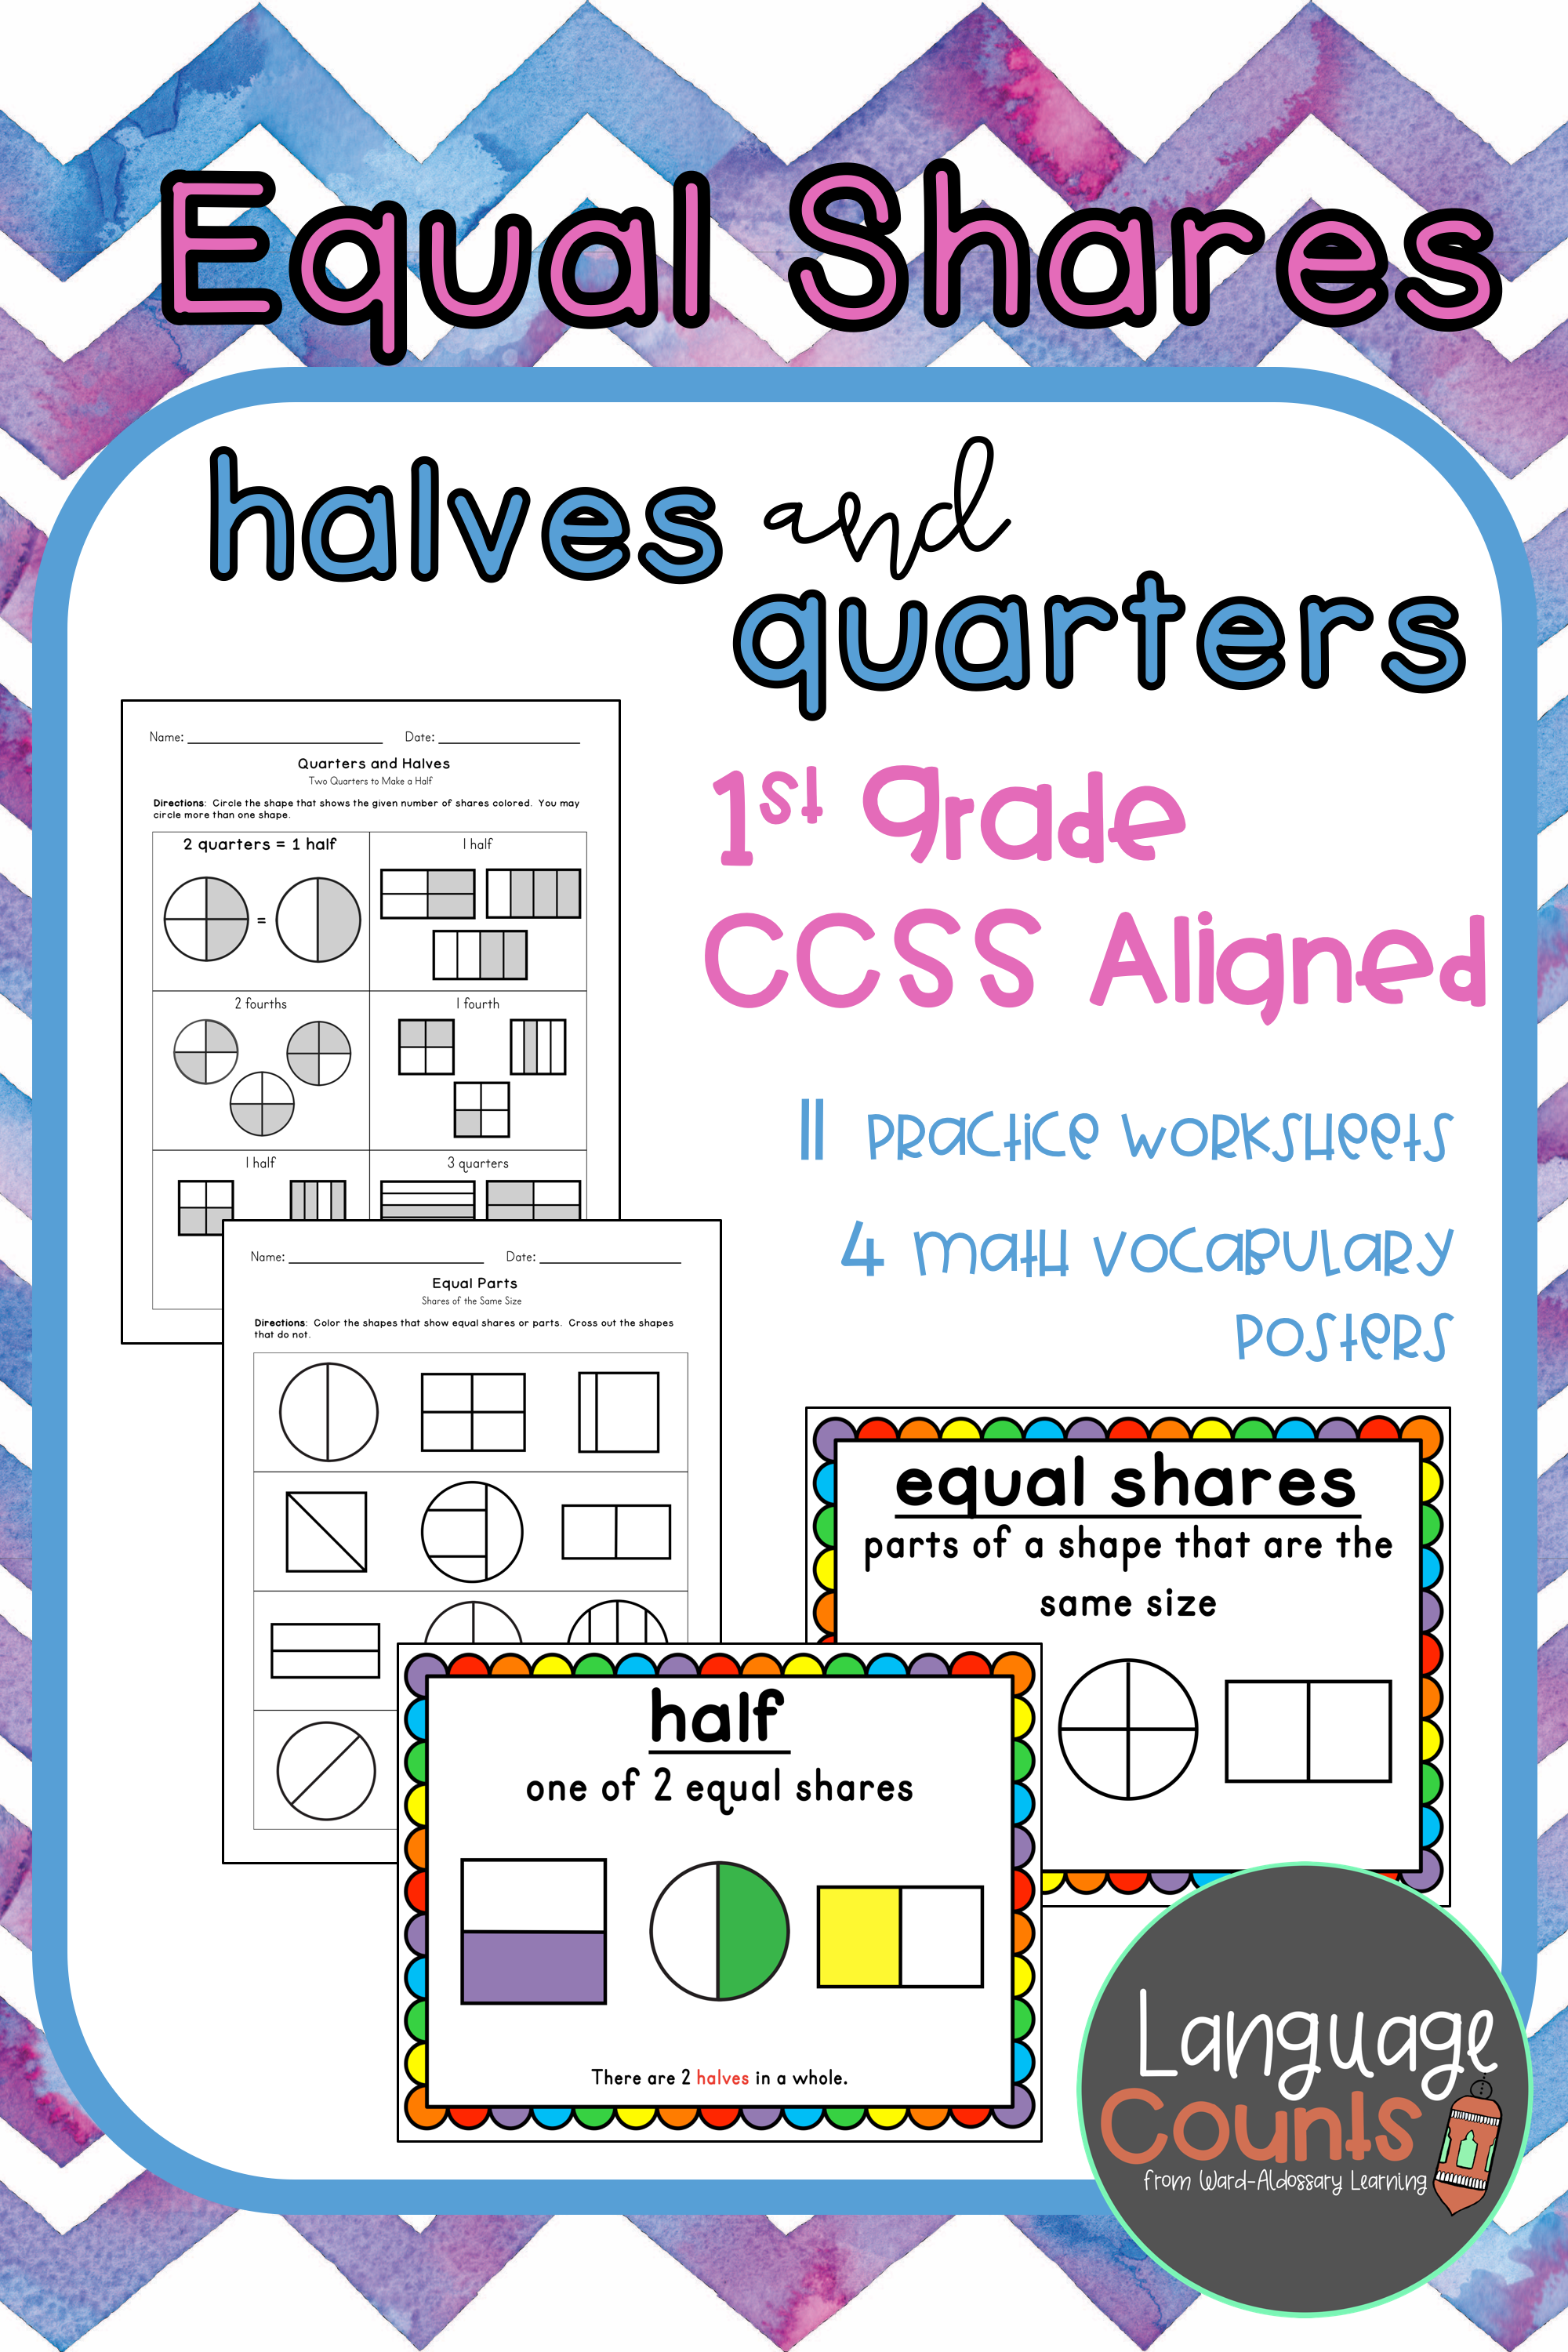 Equal Shares Of Rectangles And Circles Aligns To Envision Topic 15 11 Practice Worksheets And Elementary School Math 1st Grade Worksheets Academic Language [ 3000 x 2000 Pixel ]